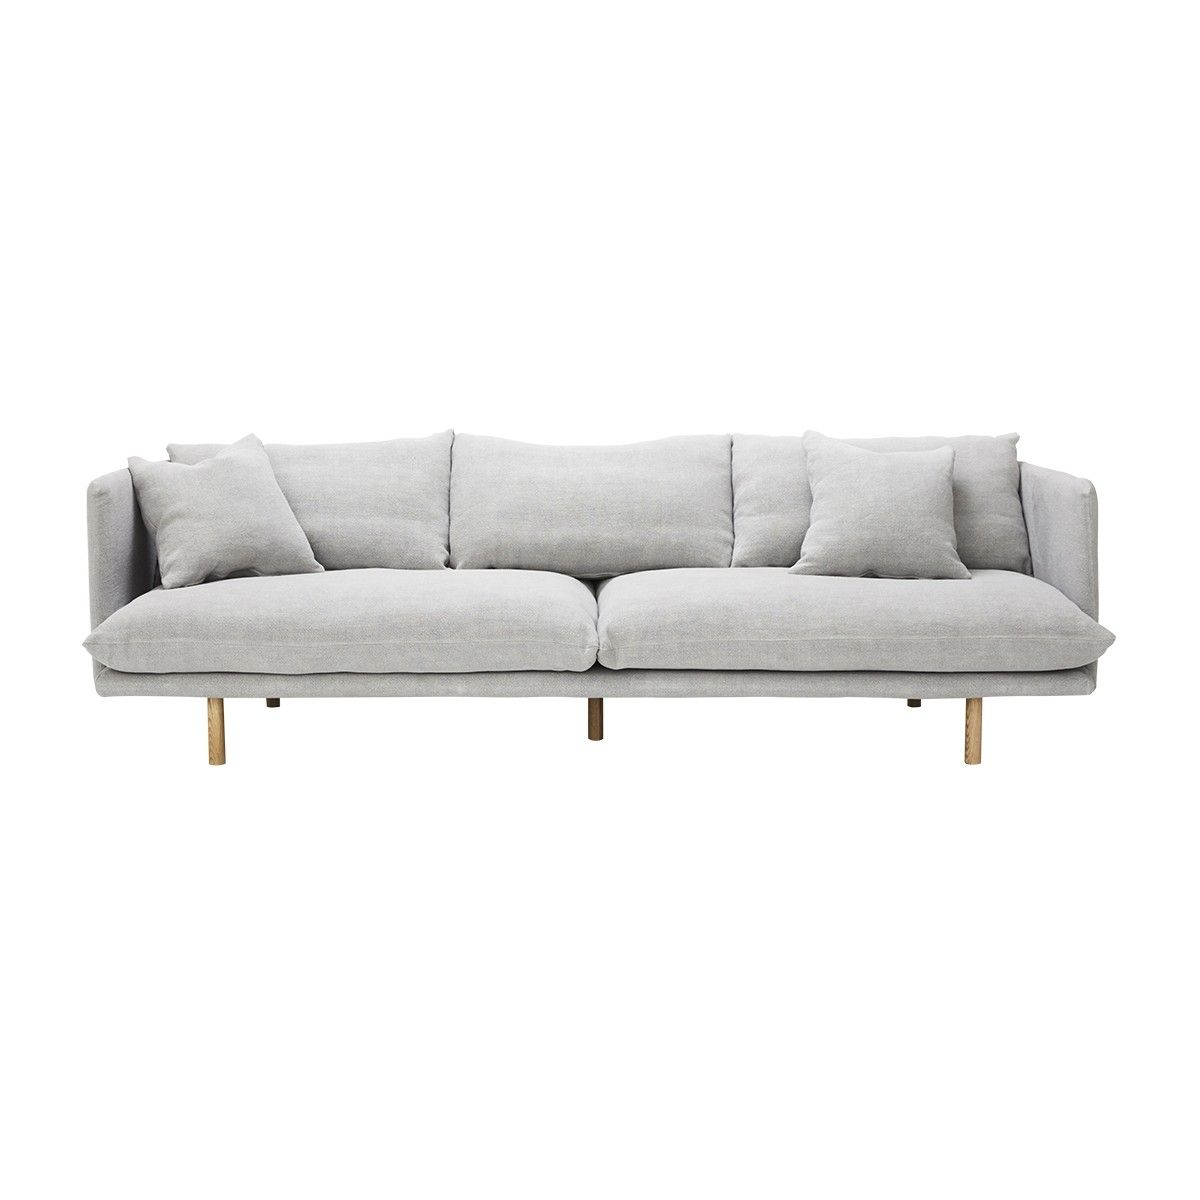 Best Zephyr 3 5 Seater Sofa 5 Seater Sofa 400 x 300